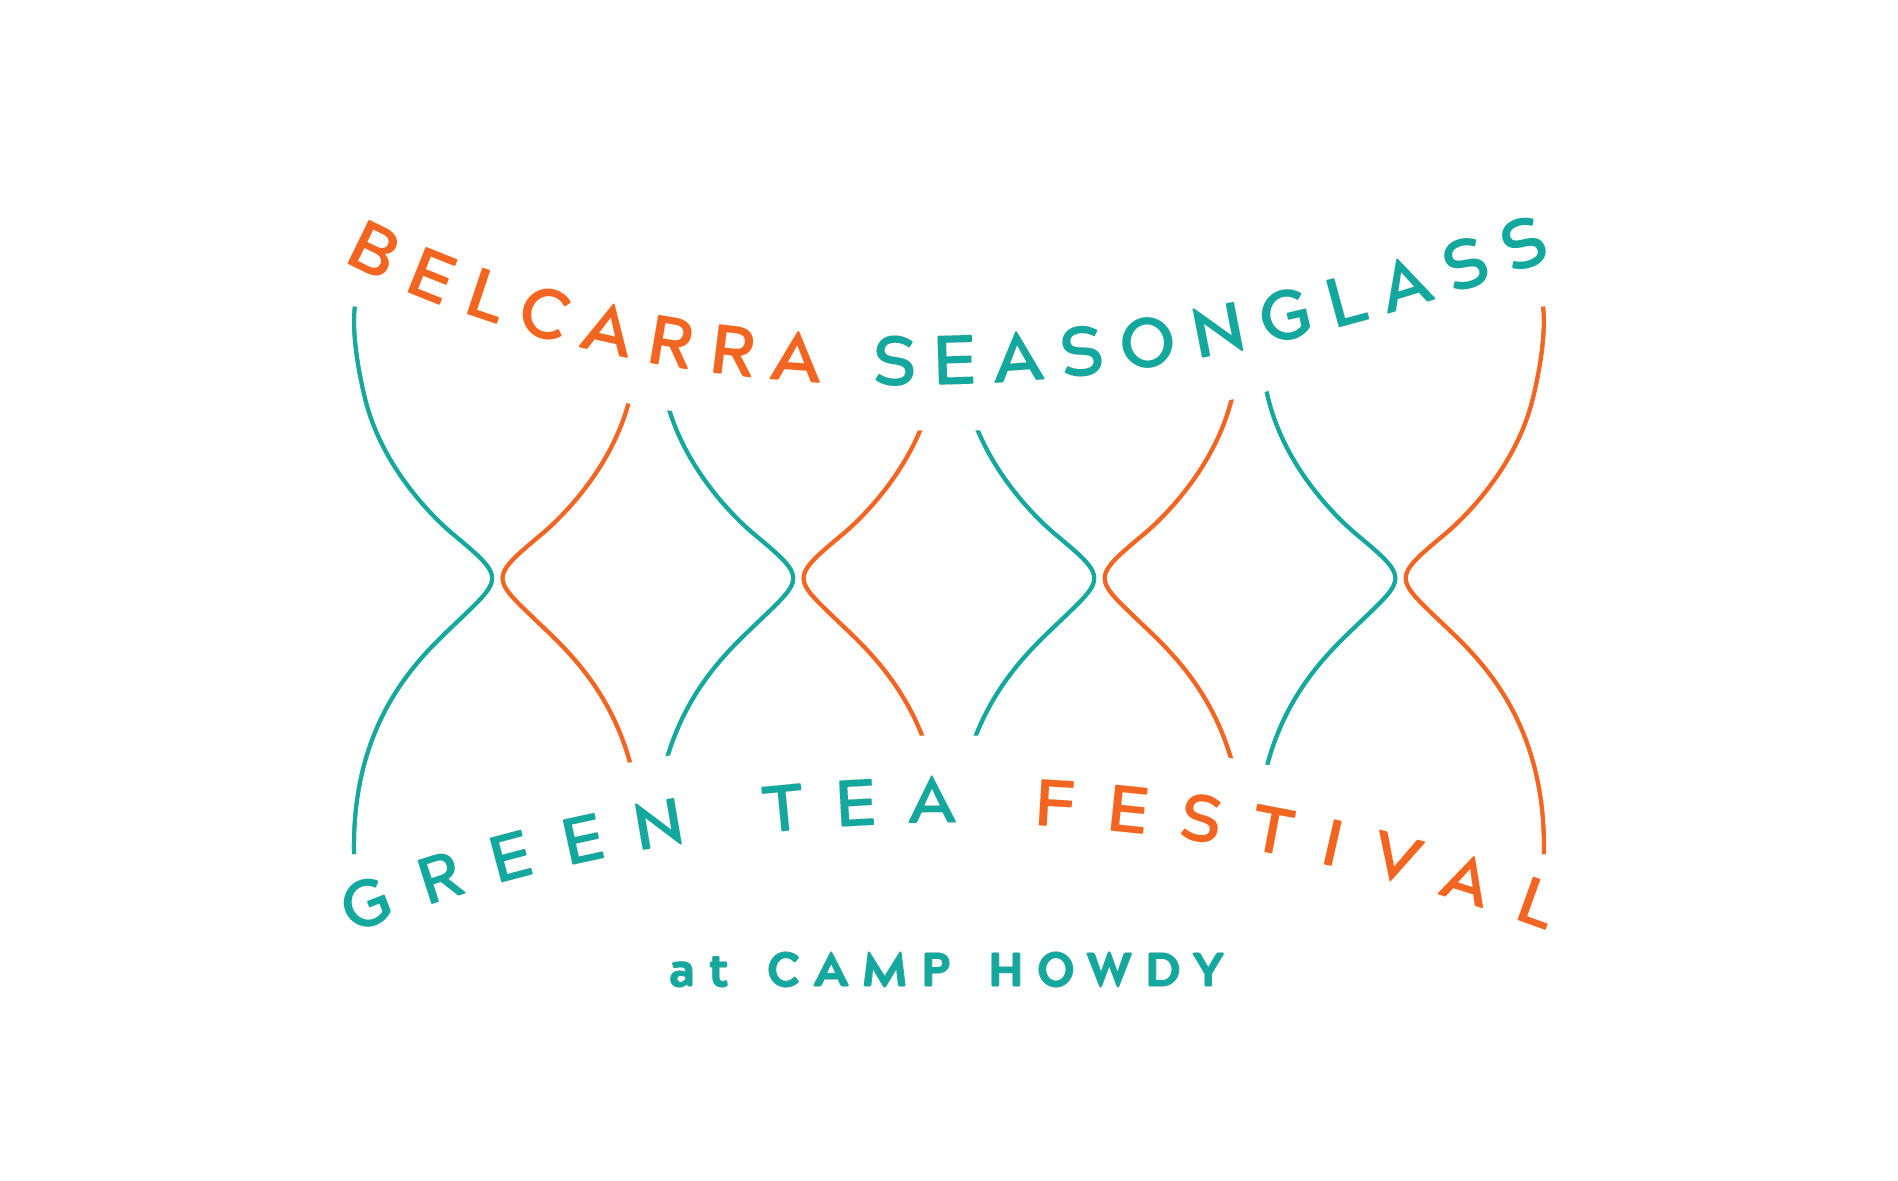 Belcarra Seasonglass Green Tea Festival - The Belcarra Tea Festival has a new name!Find out what's happening this July!July 12-14 and 19-21, 2019Click button below to learn more.